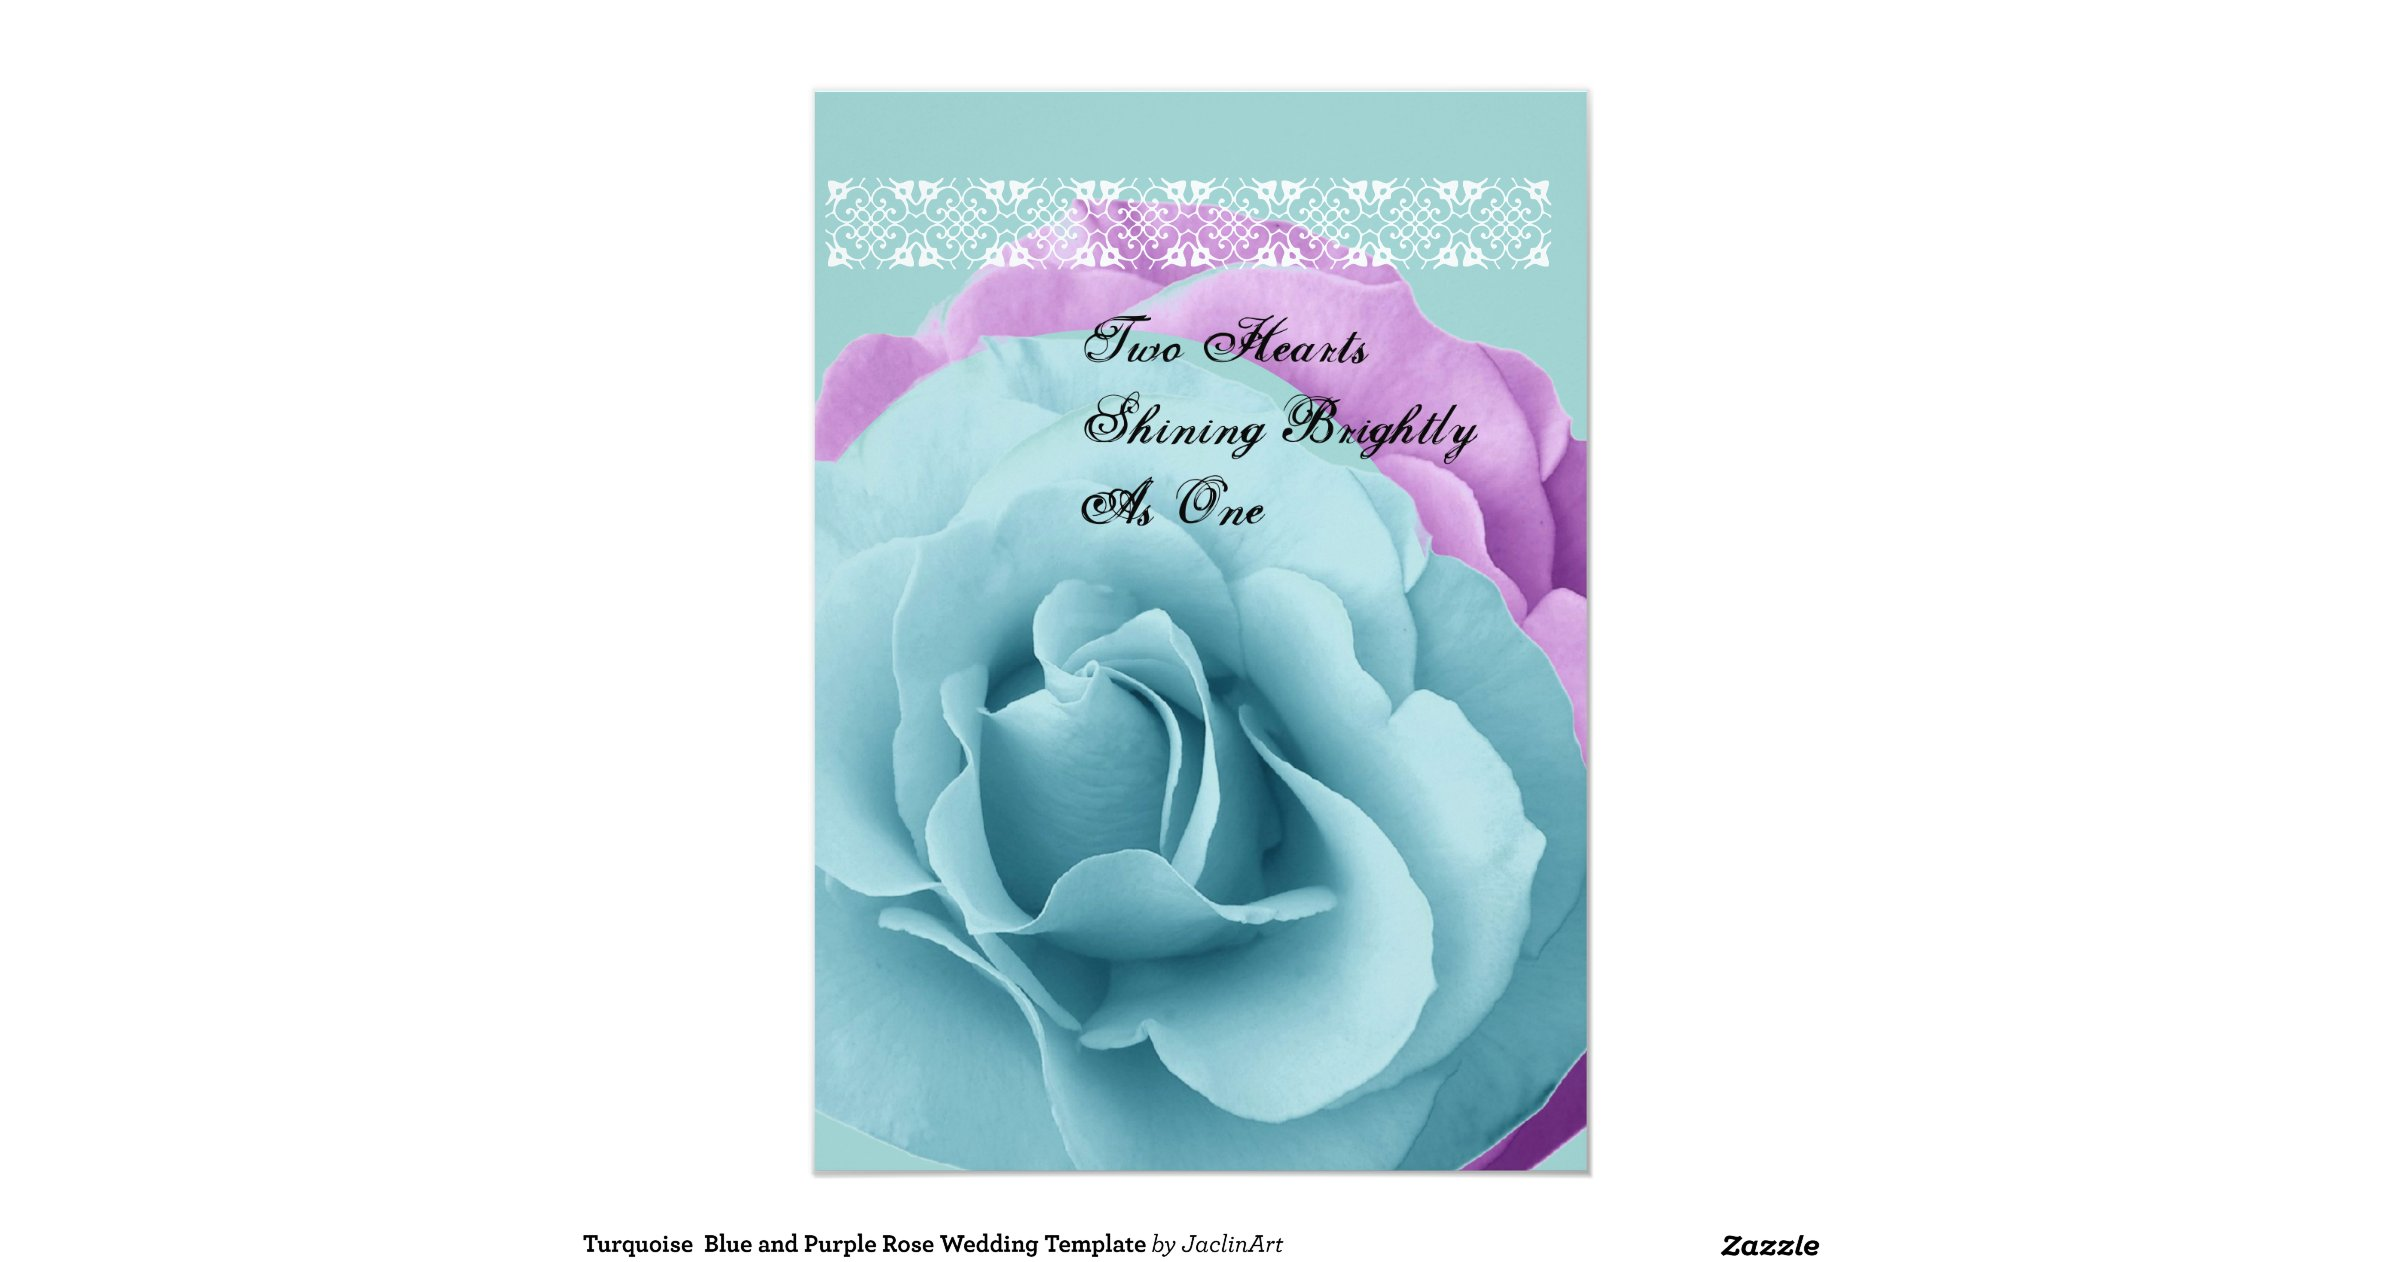 Purple Rose Wedding Invitations: Turquoise Blue And Purple Rose Wedding Template 5x7 Paper